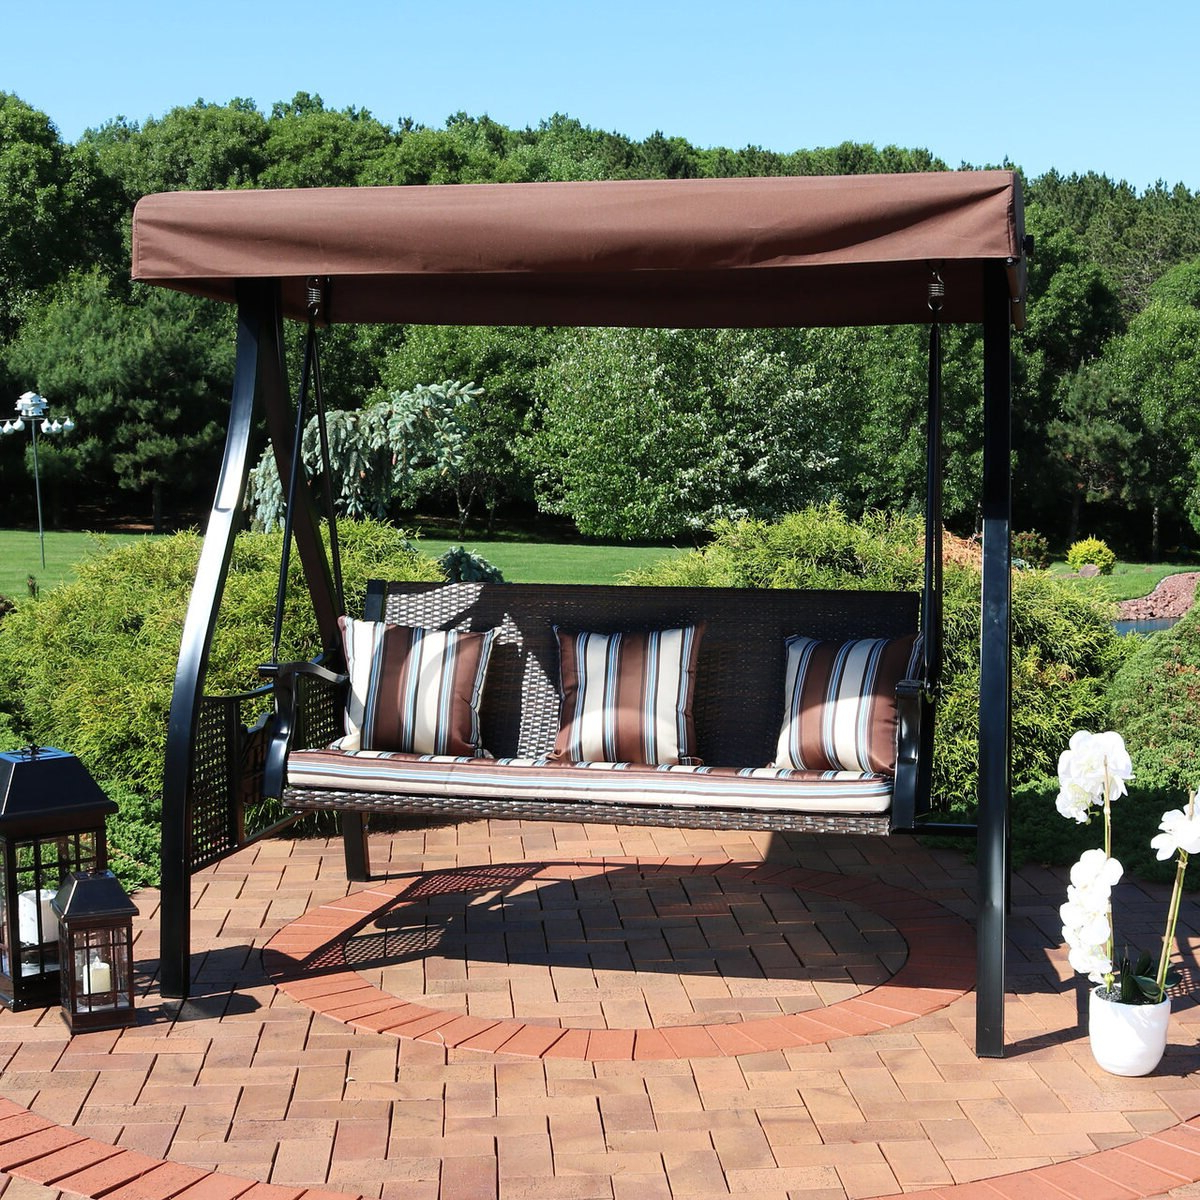 Home & Garden Patio Swing Adjustable Canopy Steel Frame Gray With Regard To Fashionable Patio Gazebo Porch Canopy Swings (View 16 of 30)